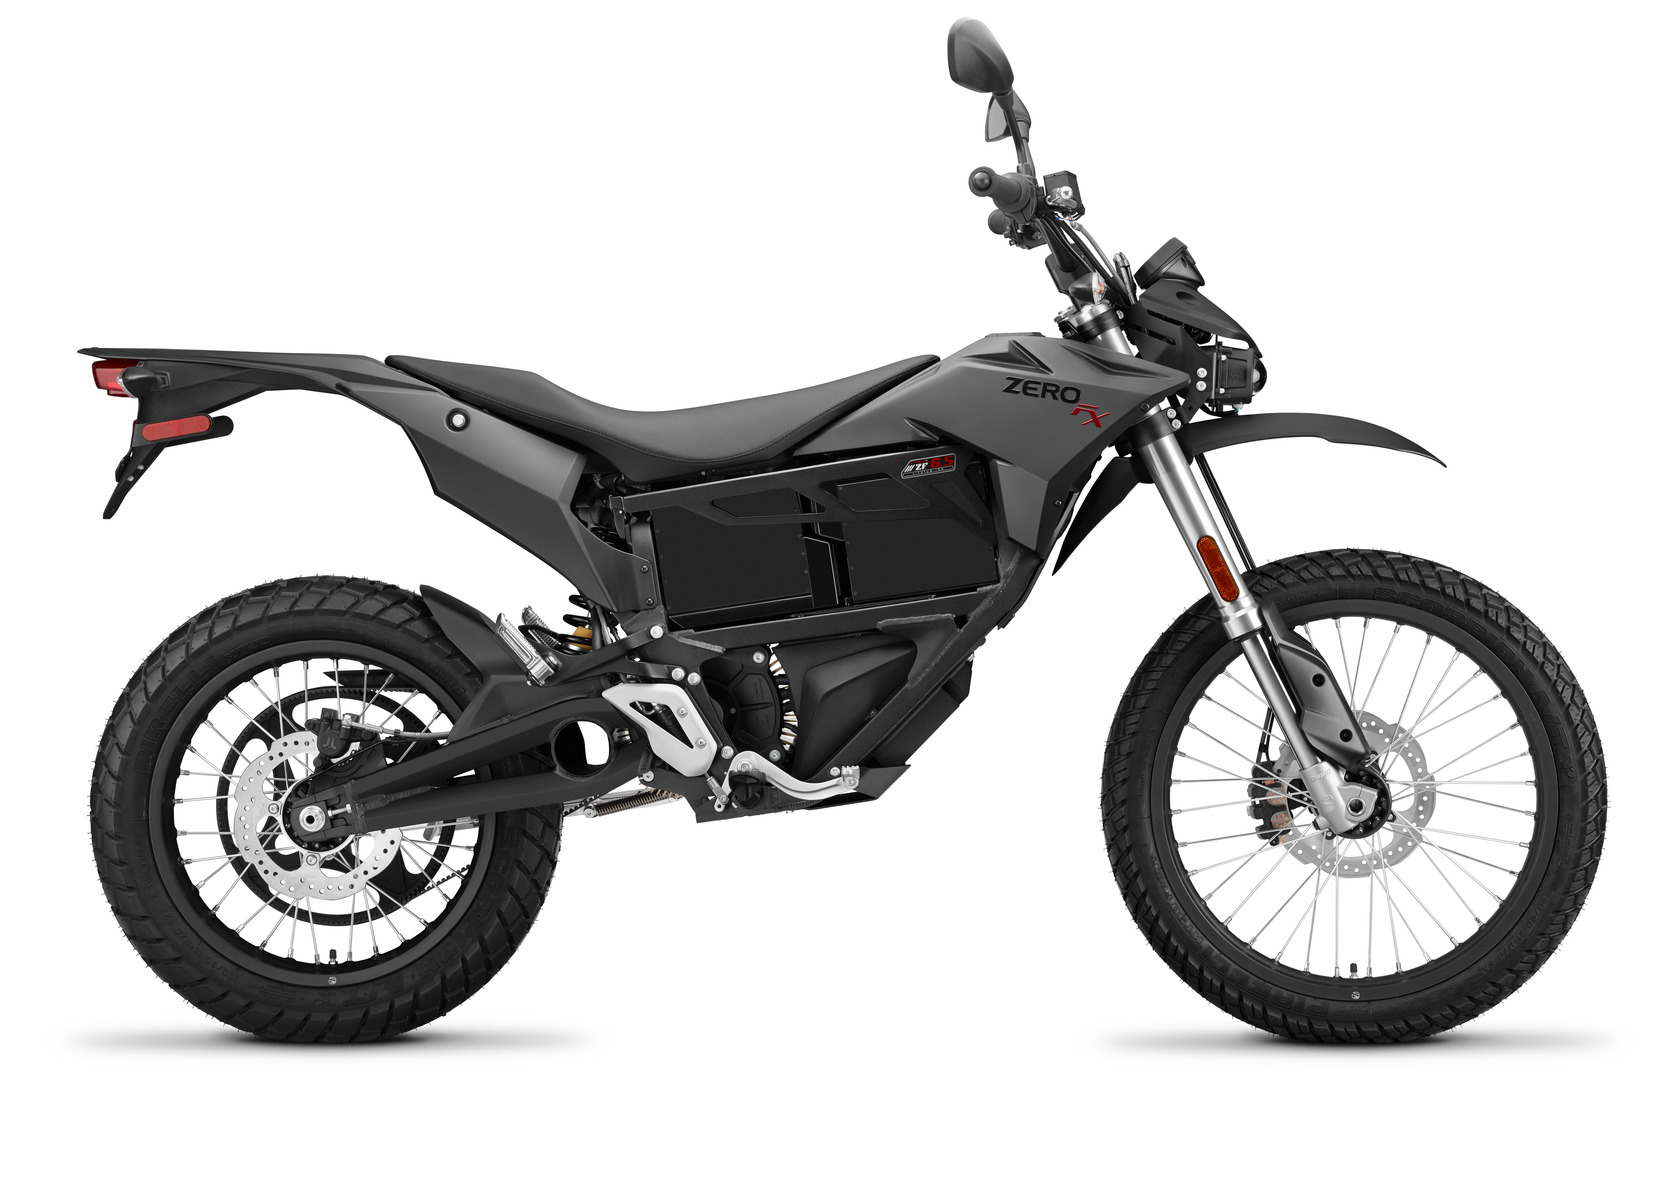 2016 Zero FX Electric Motorcycle: Black Profile Right, White Background